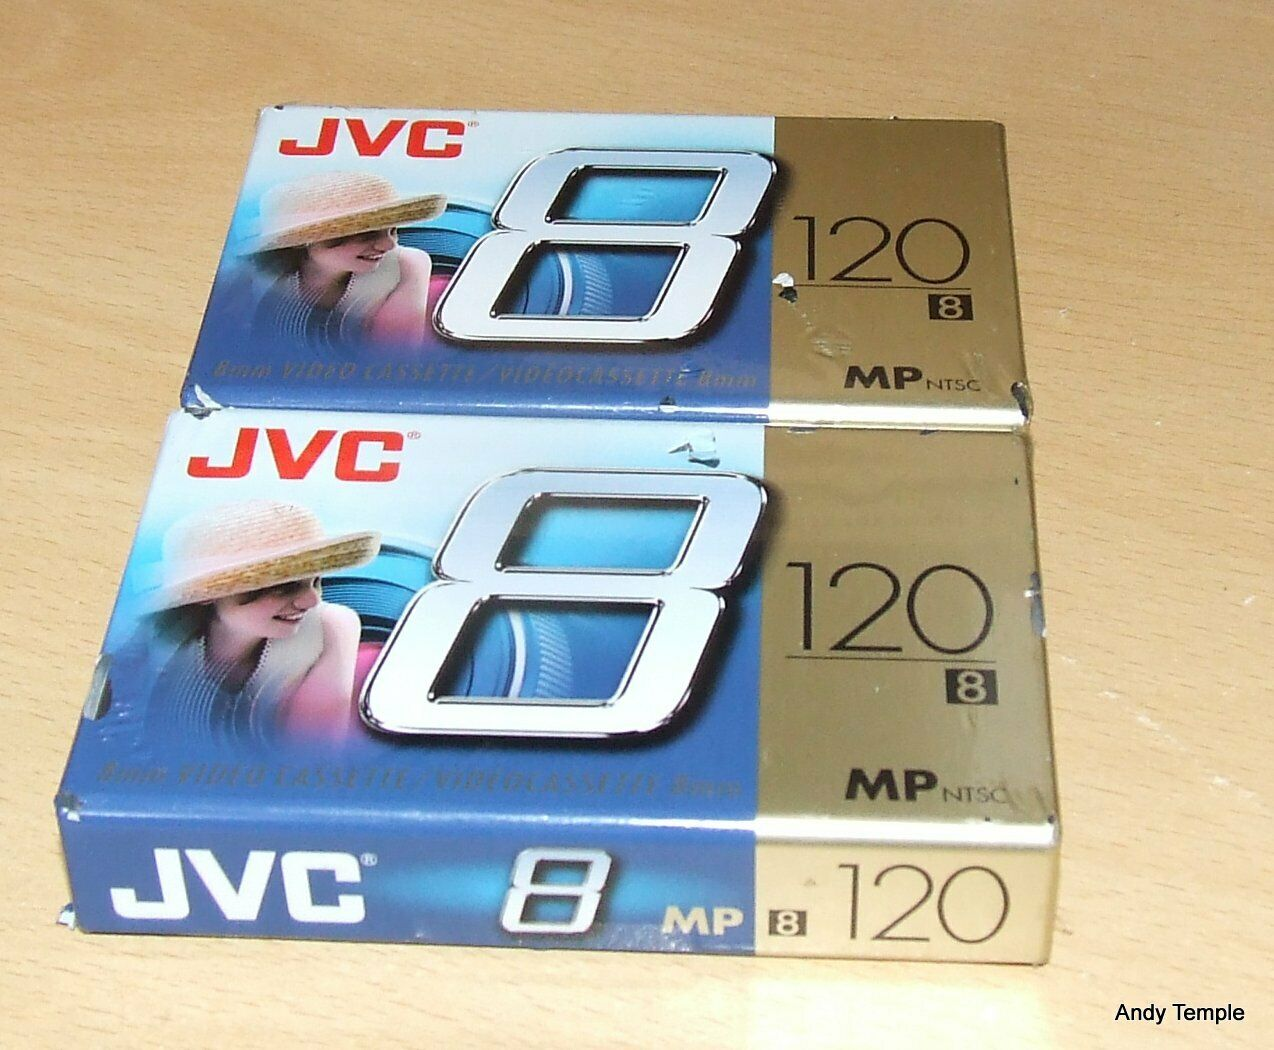 2 x JVC P6-120 MP 8mm Video Cassettes Still Sealed + 1 Other